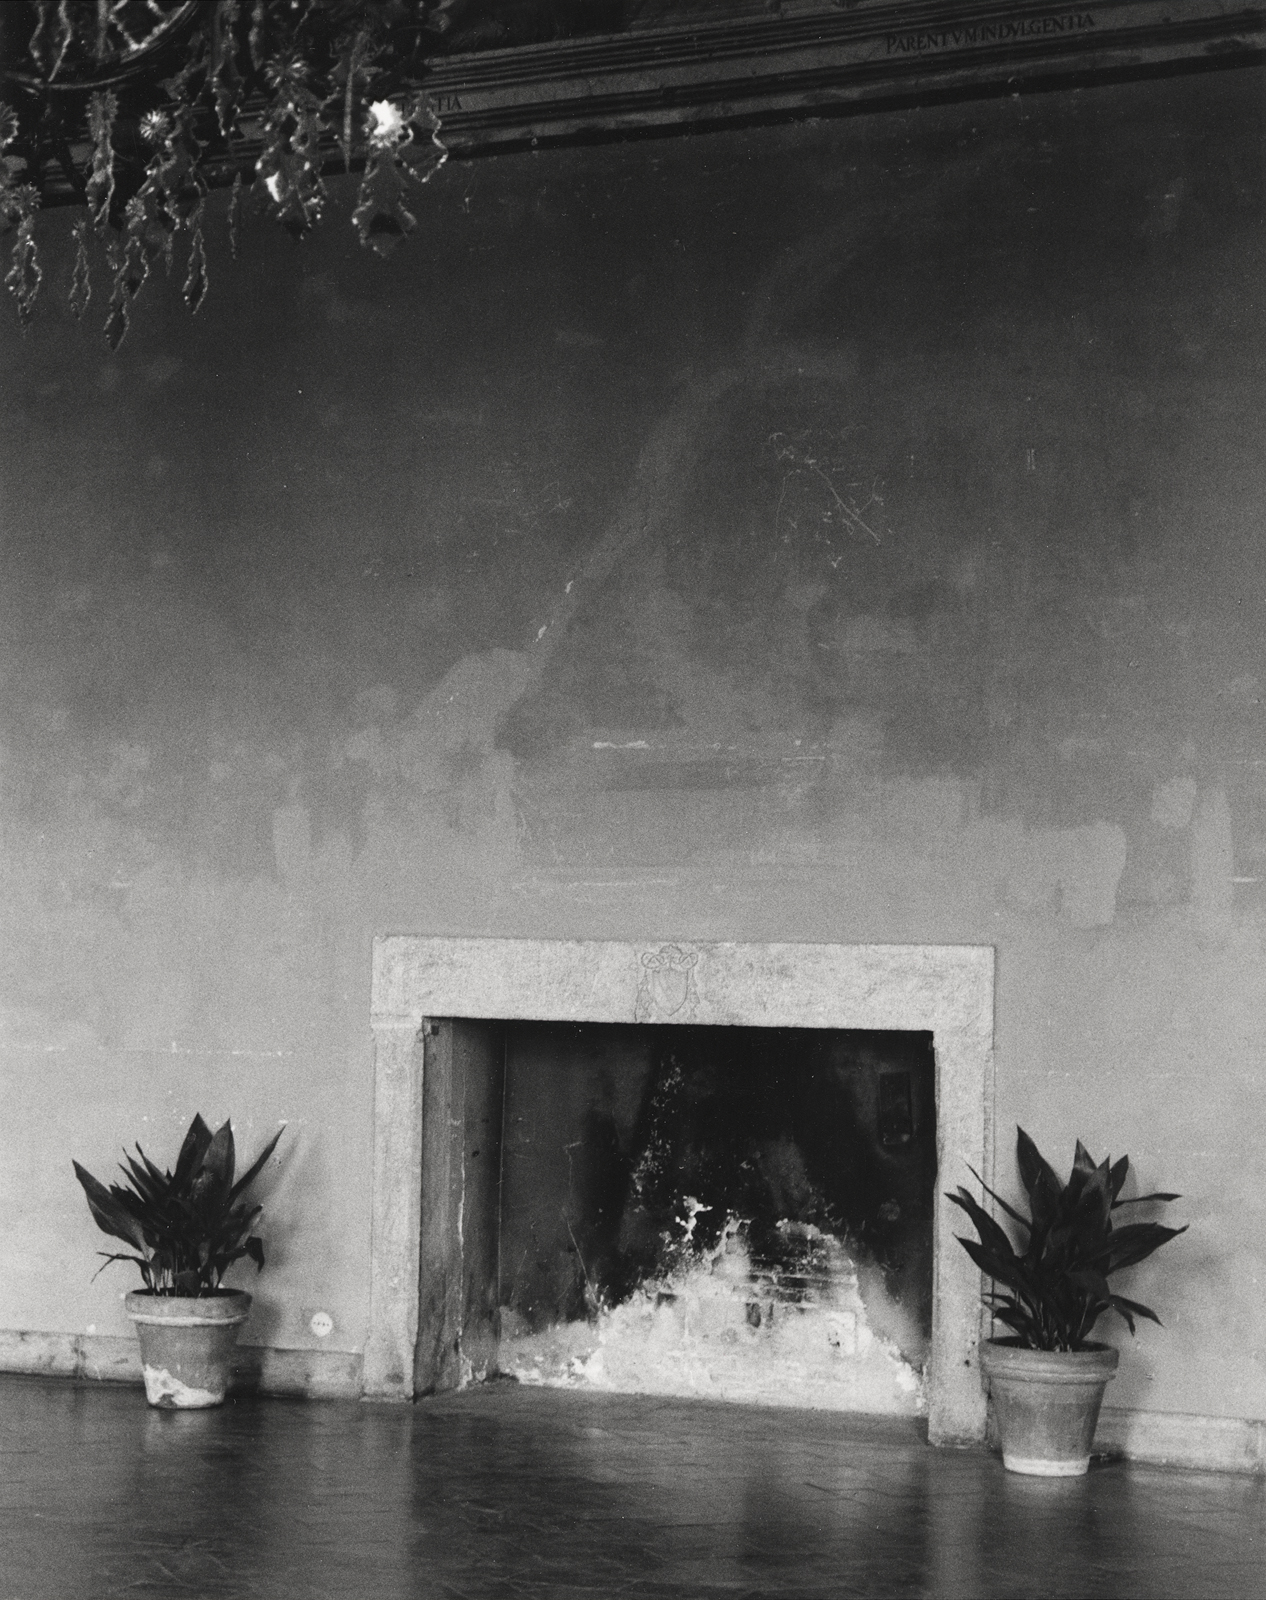 tivoli,fireplace and plants